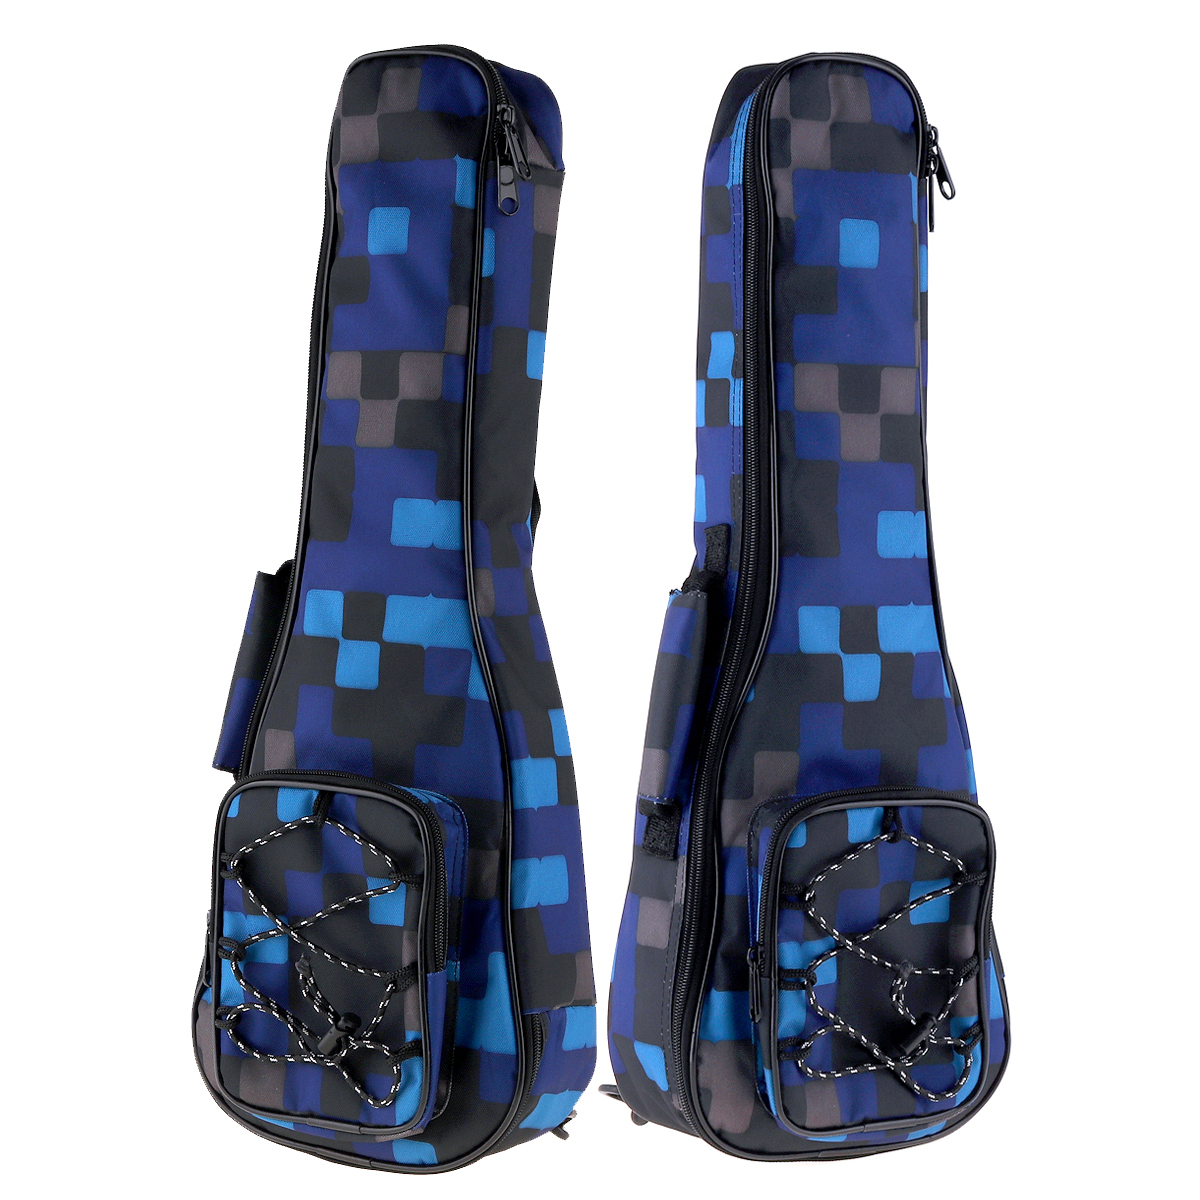 21 Inch Colorful Ukulele Bag 10mm Cotton Soft Case Gig Bag Mini Guitar Ukelele Backpack 2 Colors Optional in Guitar Parts Accessories from Sports Entertainment